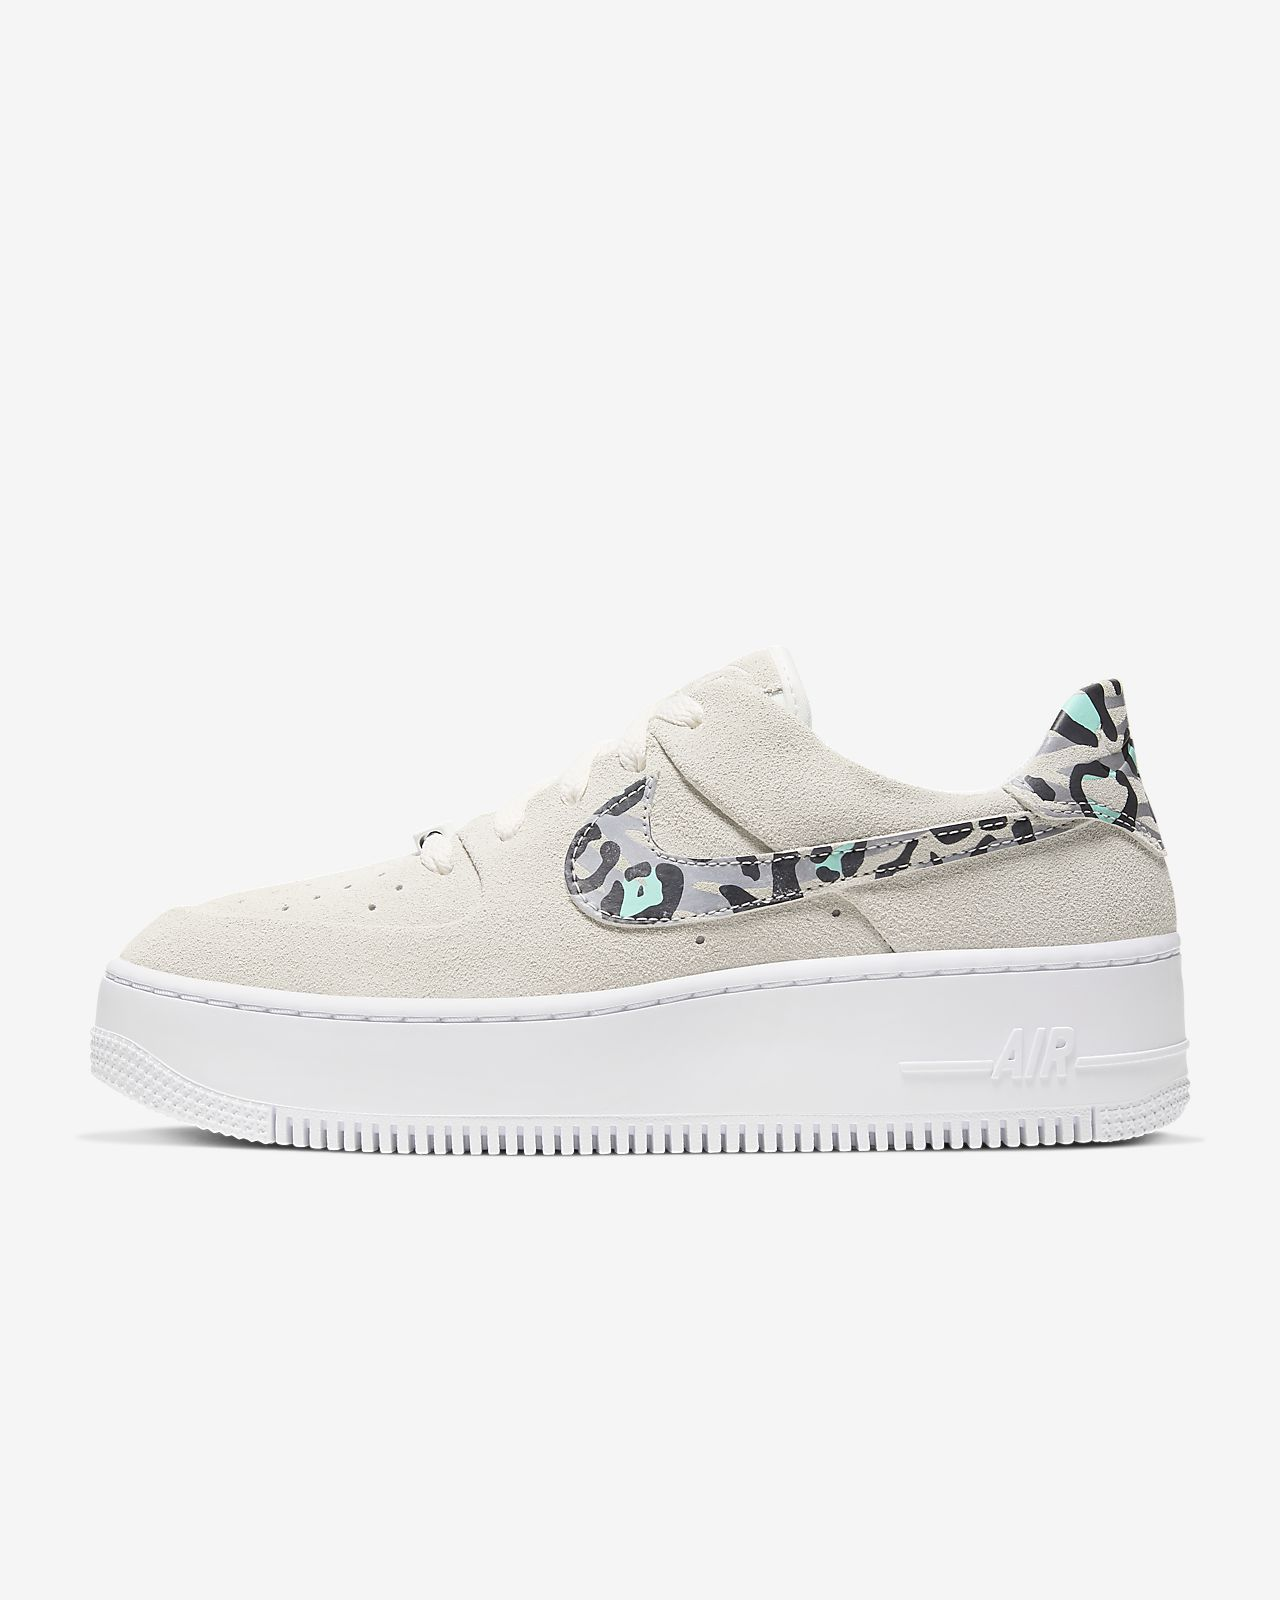 Nike Air Force 1 Sage Low Zapatillas con estampado animal - Mujer